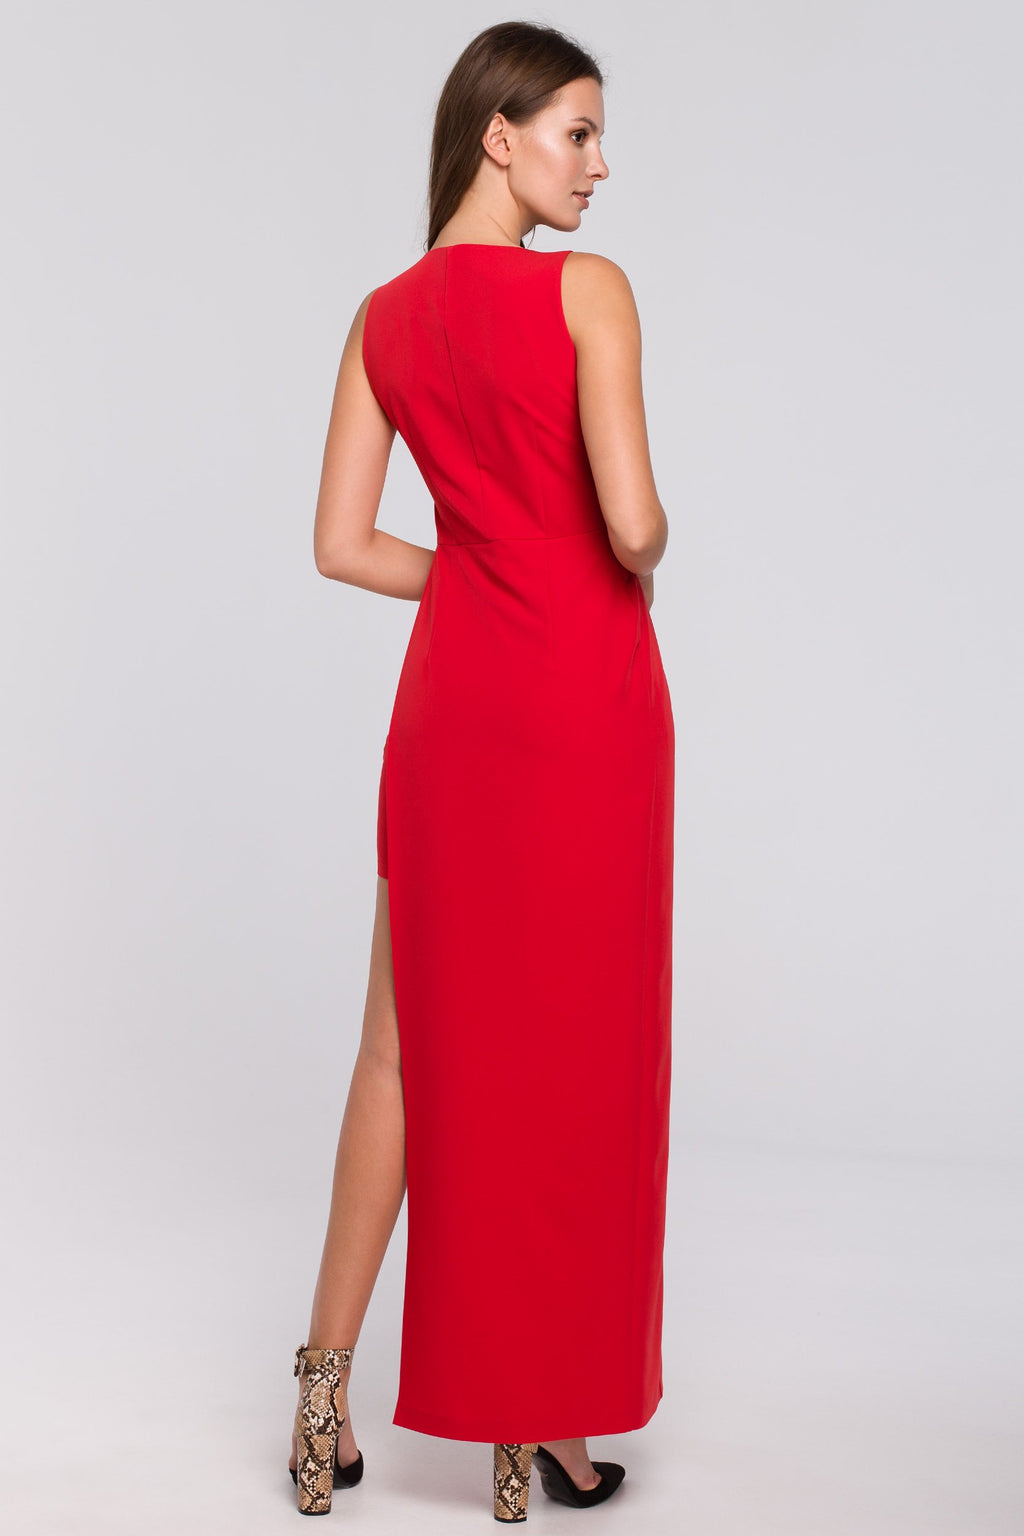 Red Maxi Asymmetric Cut Dress - So Chic Boutique